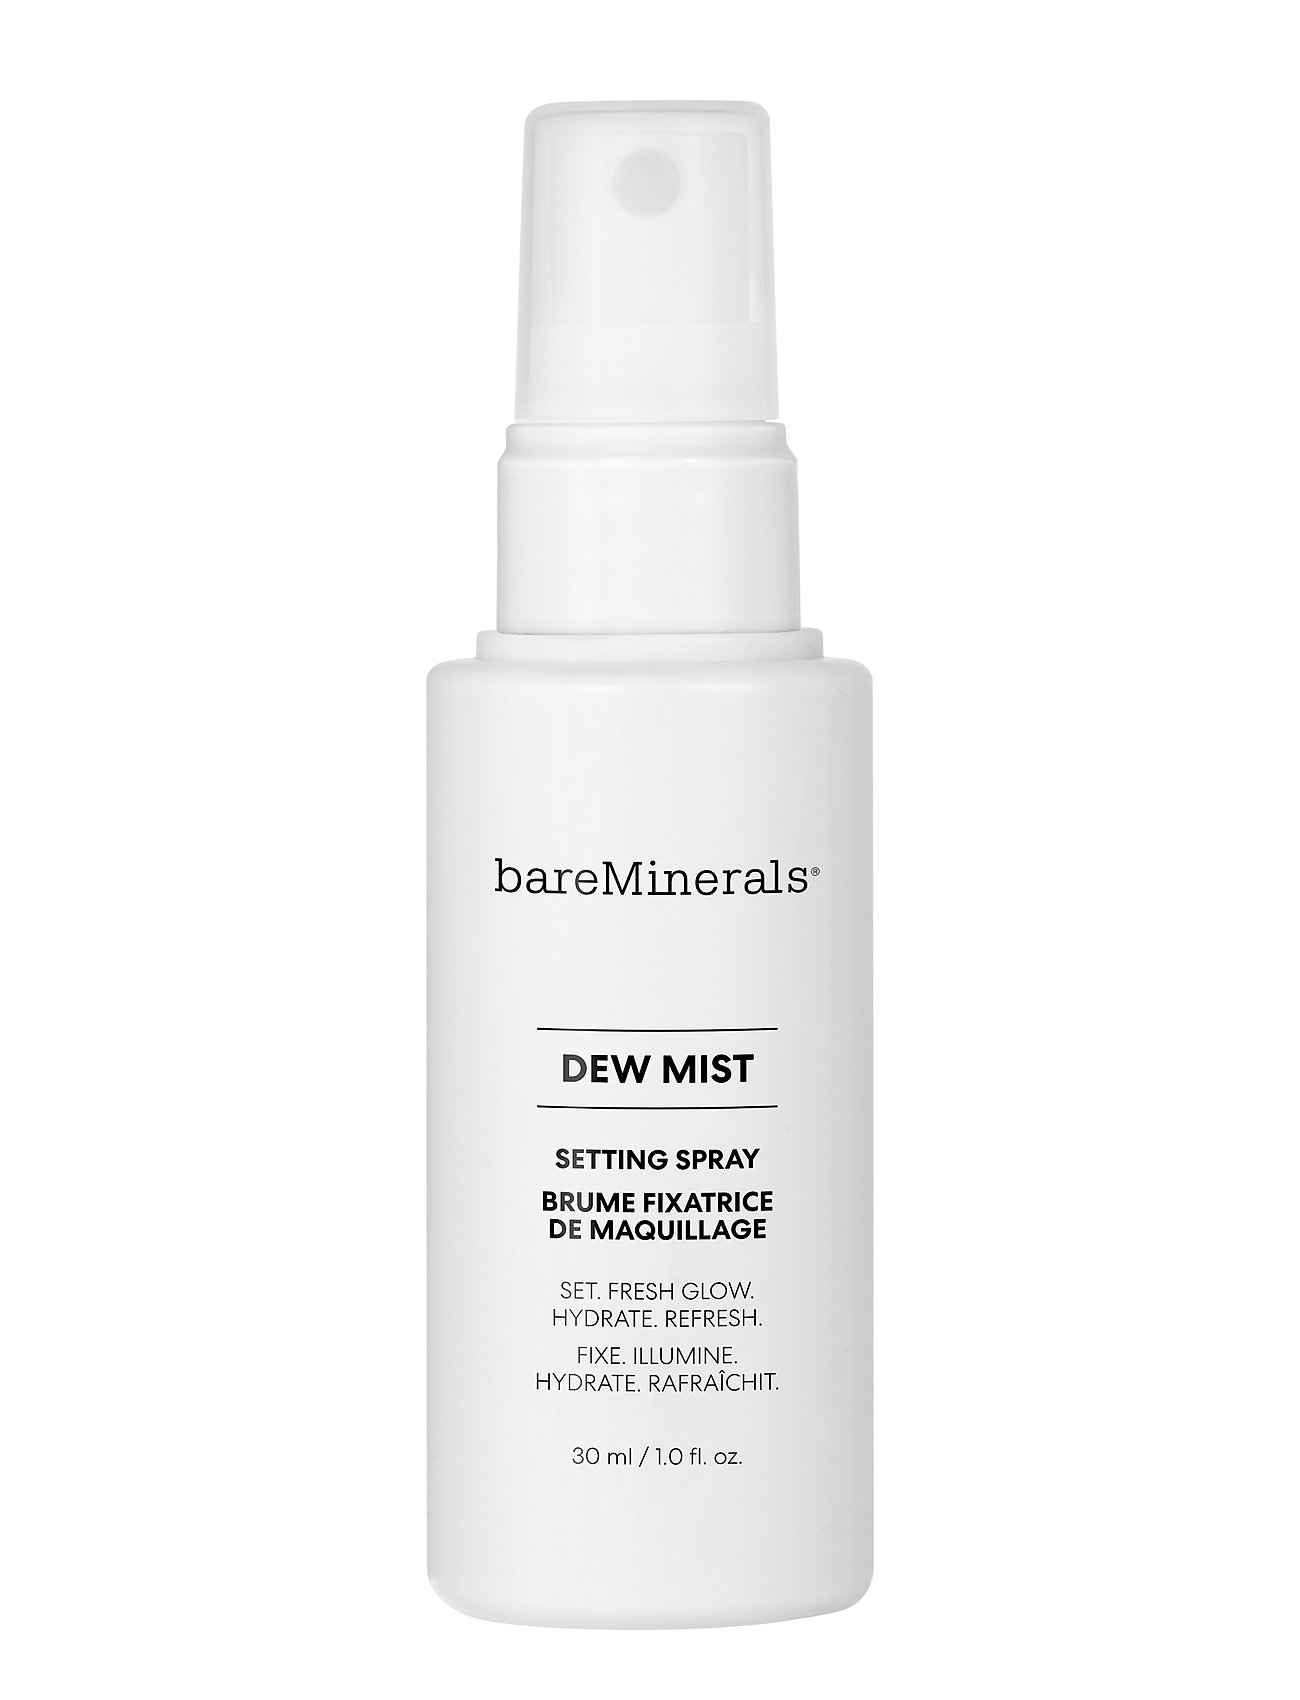 Image of Dew Mist Setting Spray Setting Spray Makeup Multi/mønstret BareMinerals (3406221499)